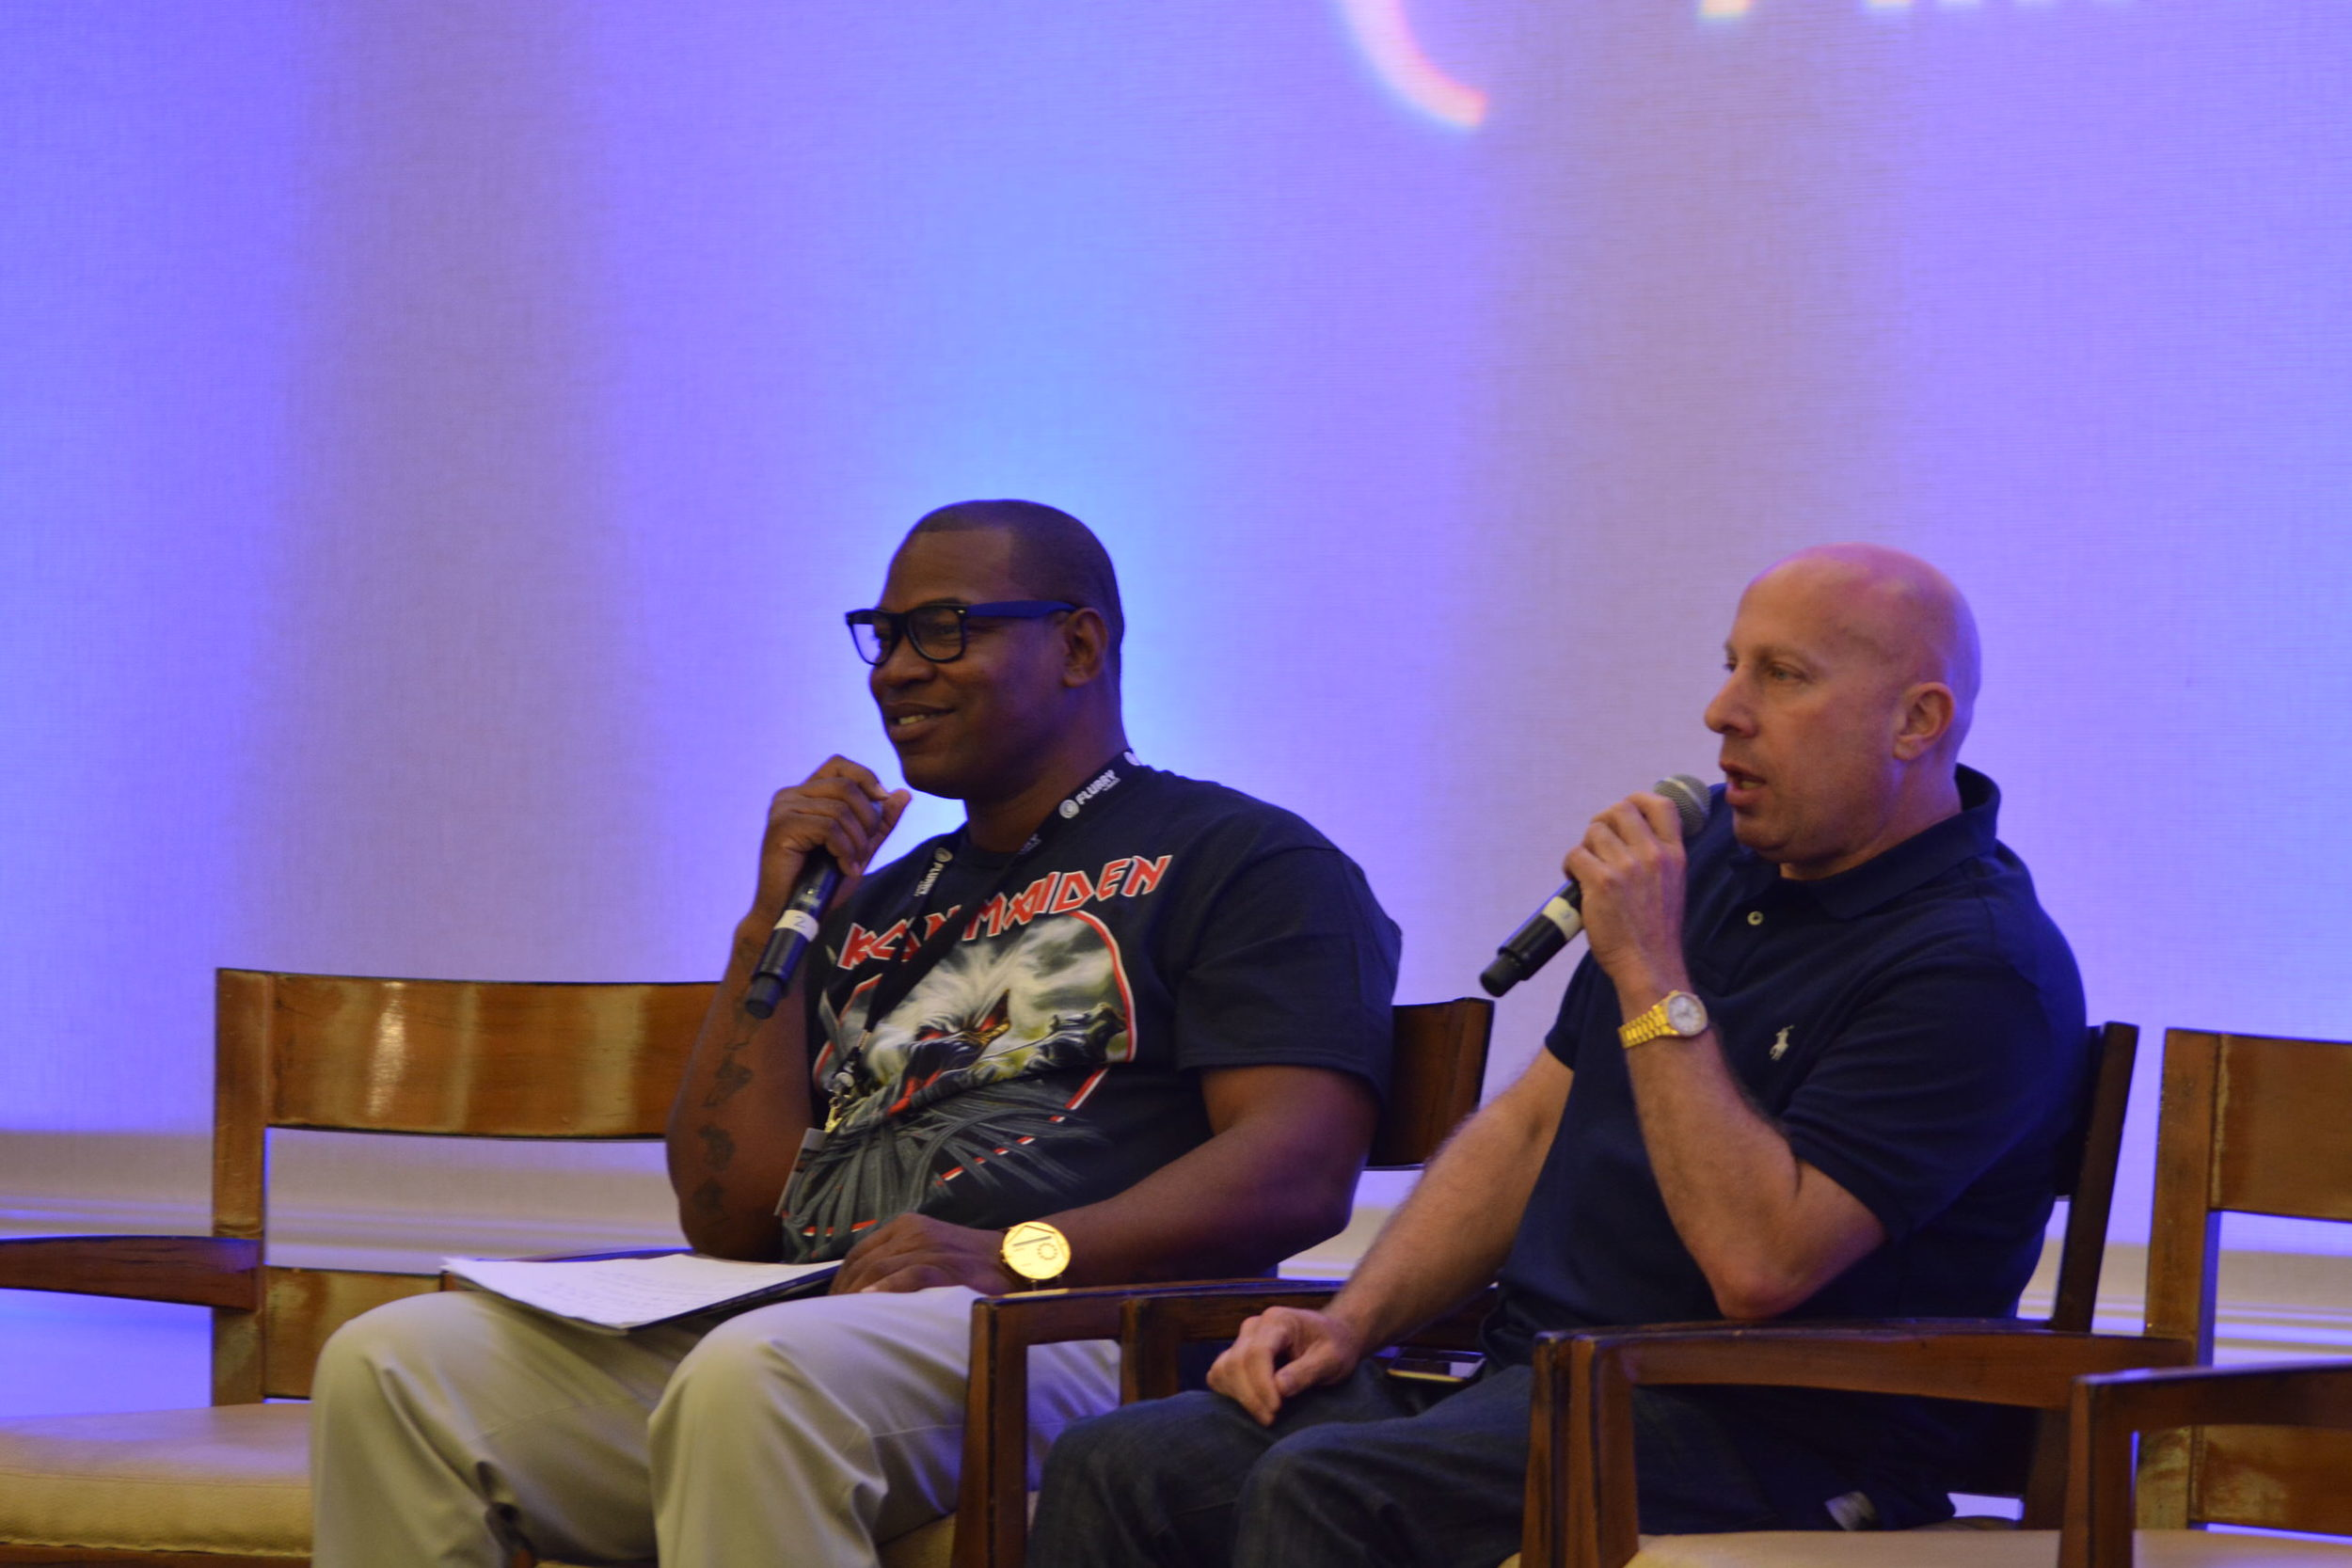 Featured: Mike Johns (Founder, I AM DIGITAL) and Steve Lobel (Iconic Hip Hop Producer and Manager, Television Personality, Author, and Entrepreneur)